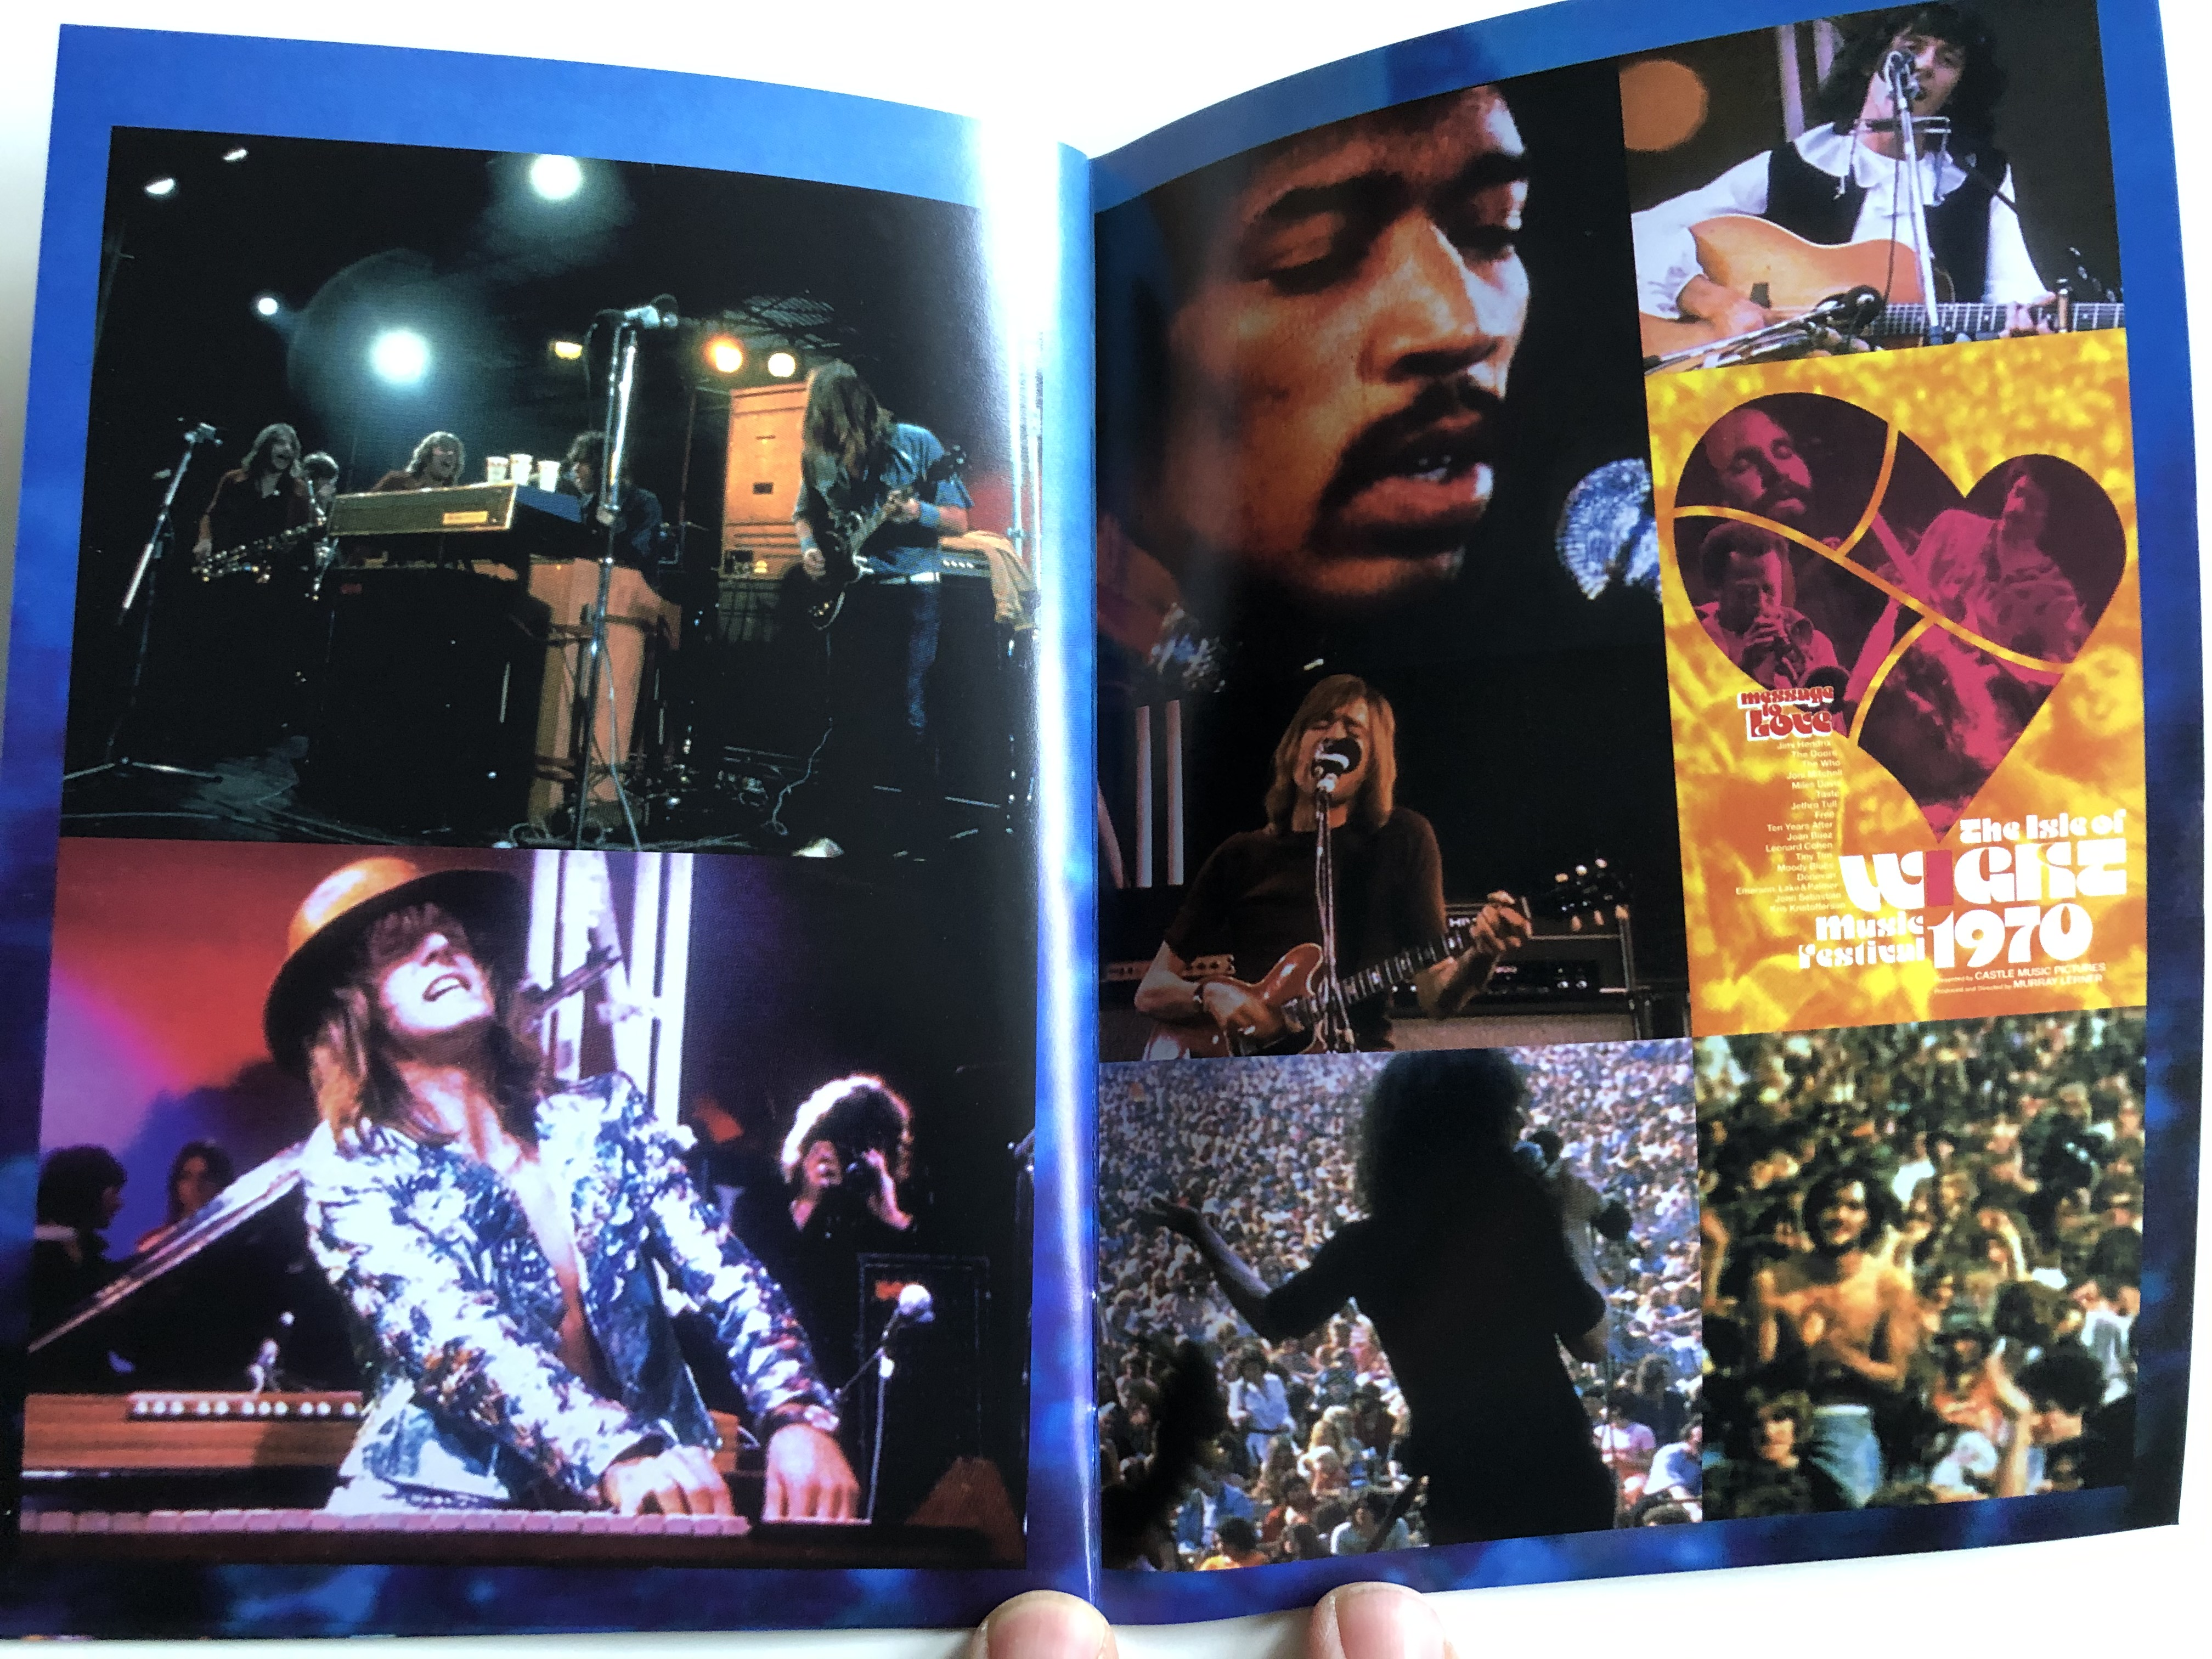 message-to-love-the-isle-of-wight-festival-the-movie-dvd-1995-6.jpg